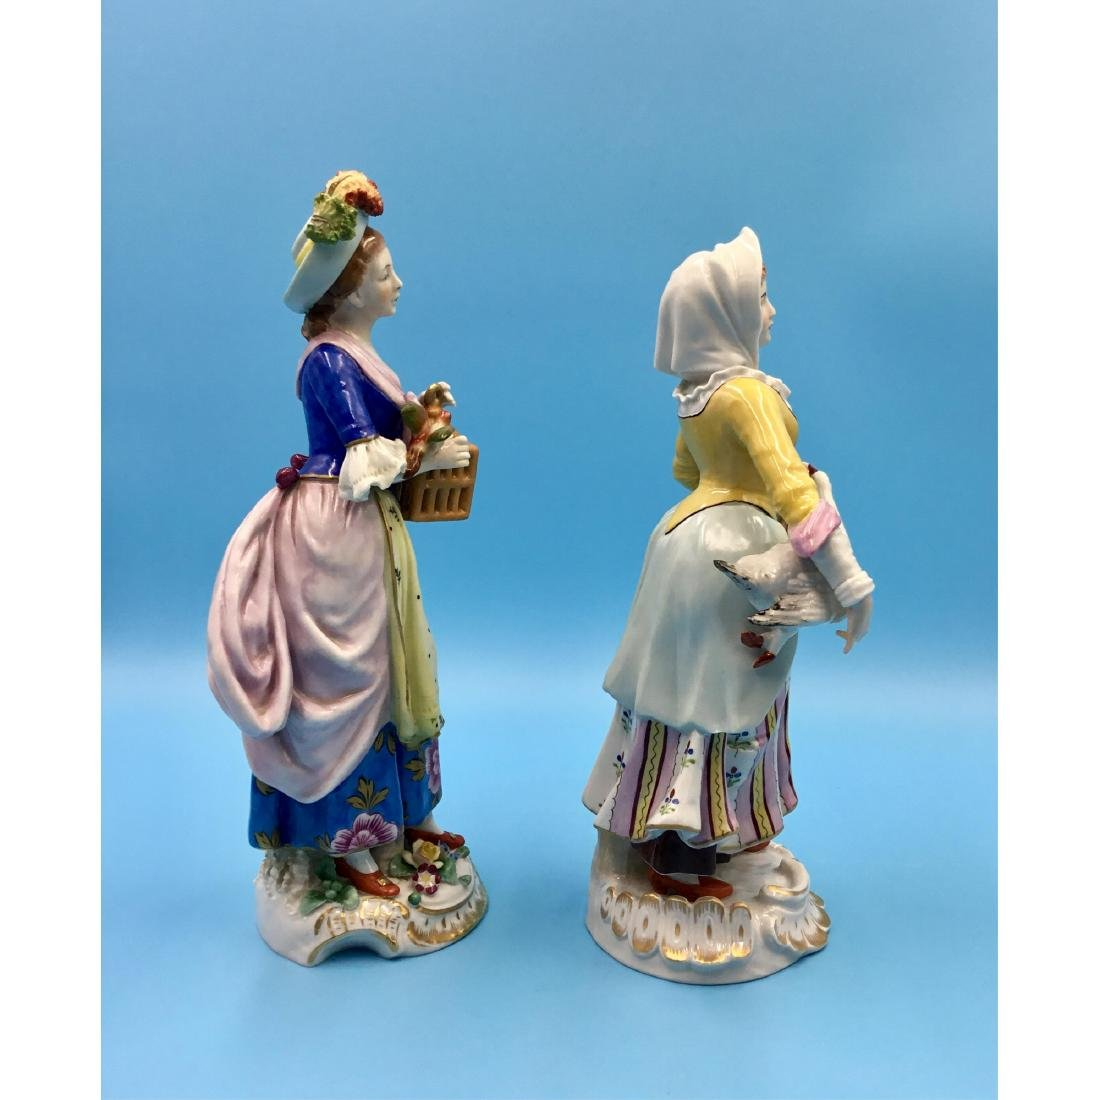 PAIR OF SITZENDORF GERMAN PORCELAIN FIGURINES - 4